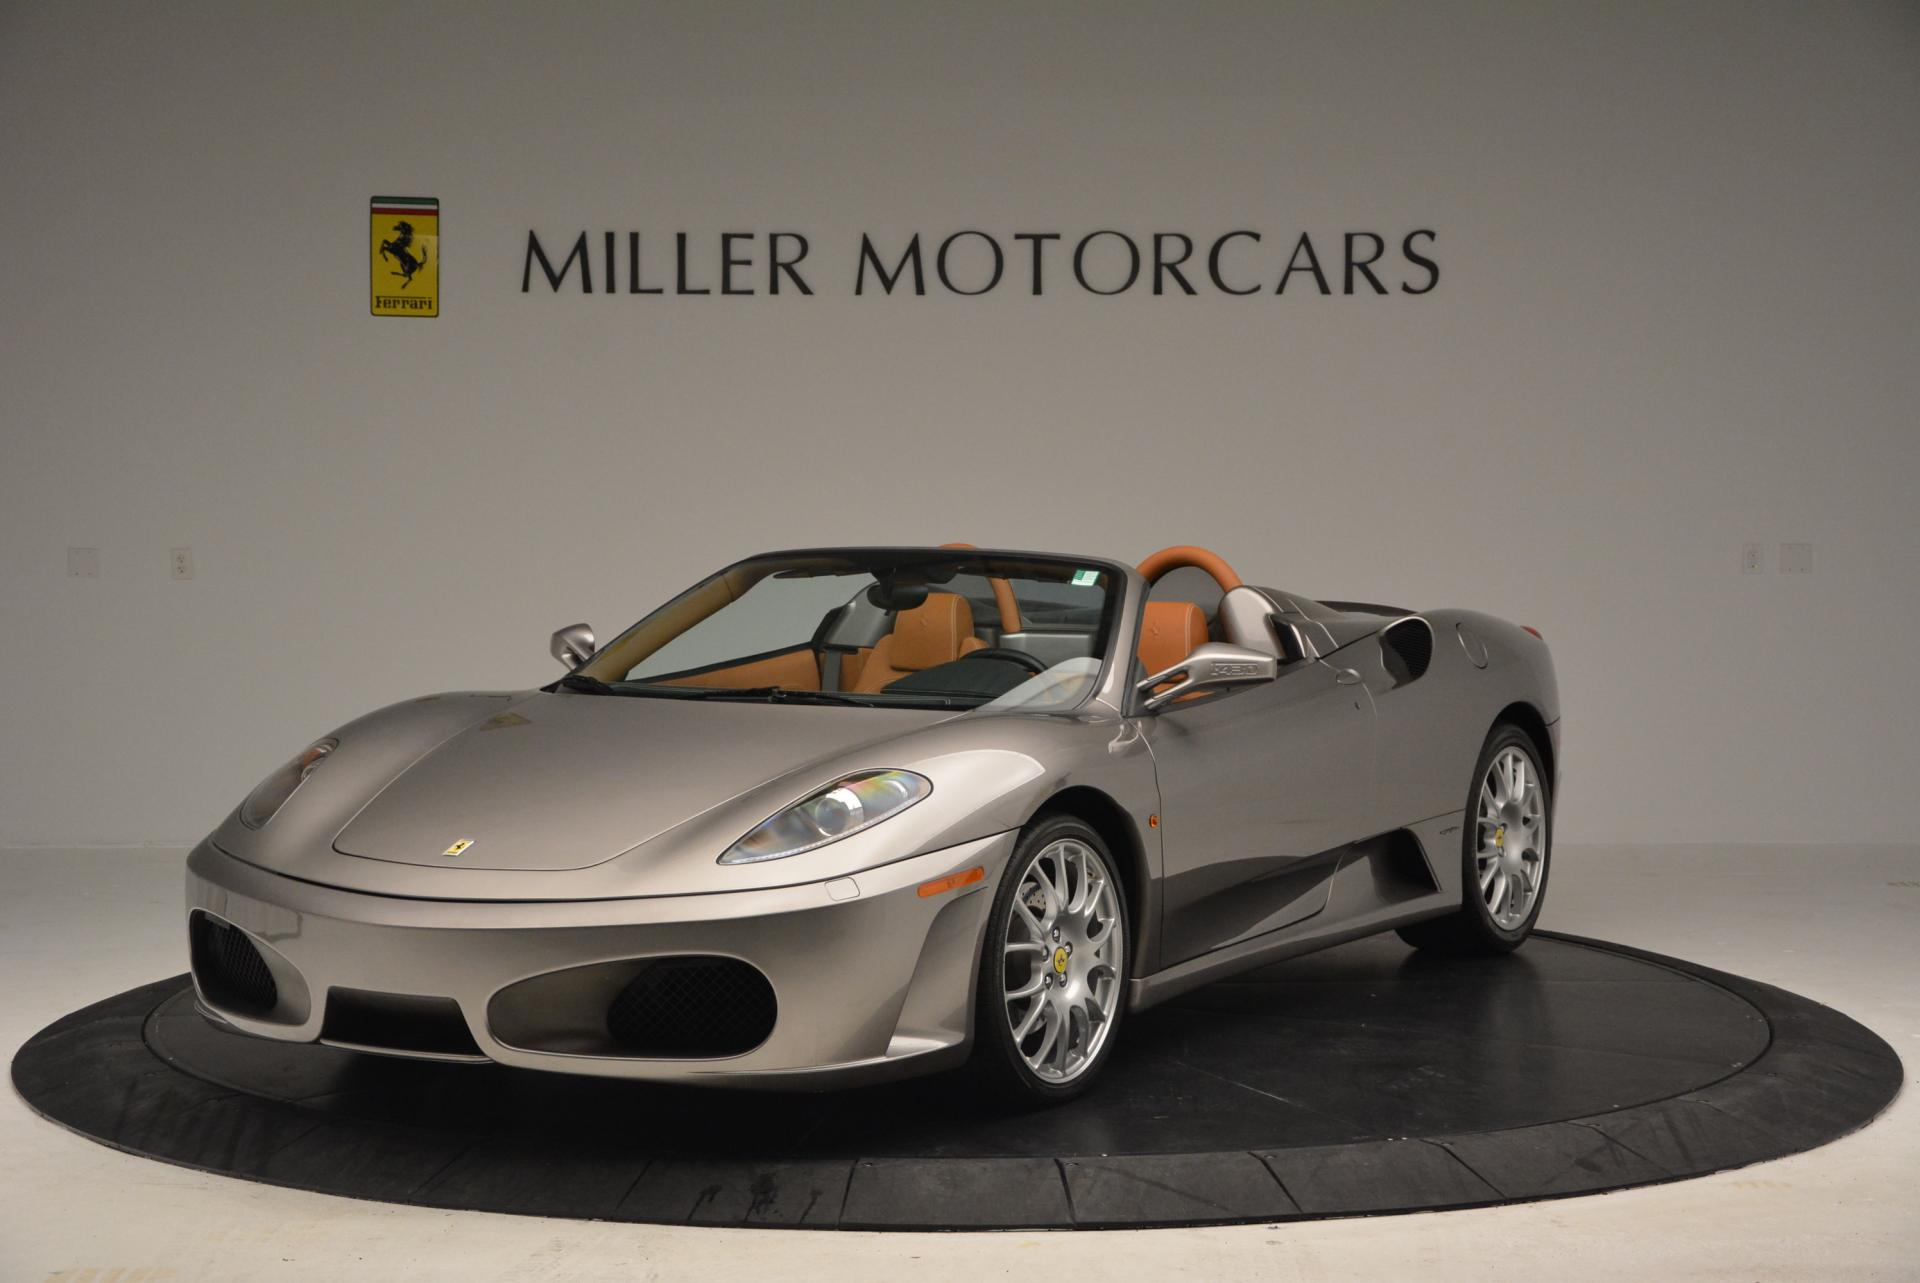 Used 2005 Ferrari F430 Spider 6-Speed Manual For Sale In Westport, CT